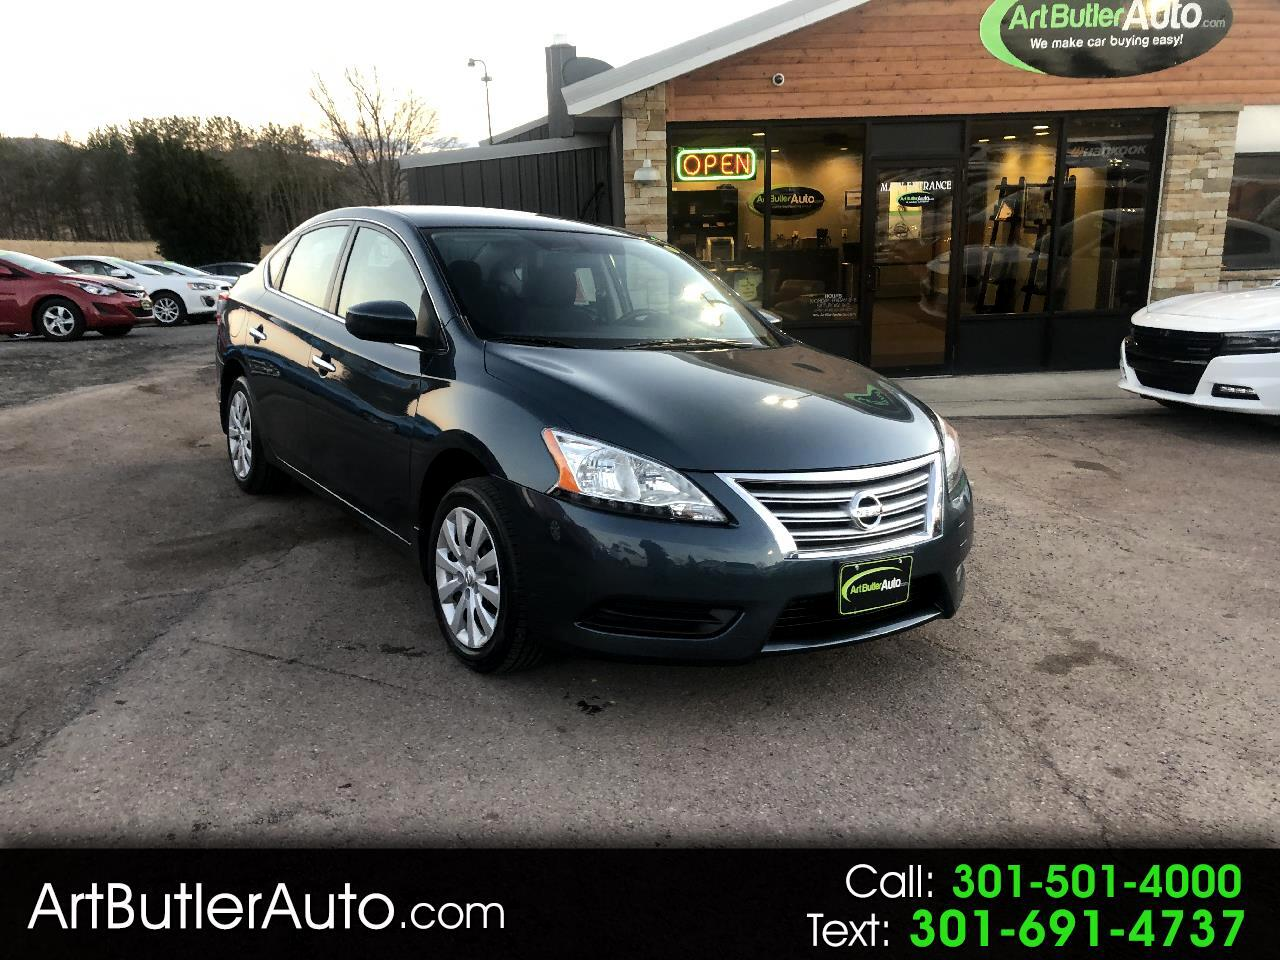 Used 2015 Nissan Sentra 4dr Sdn I4 CVT SV for Sale in Accident MD